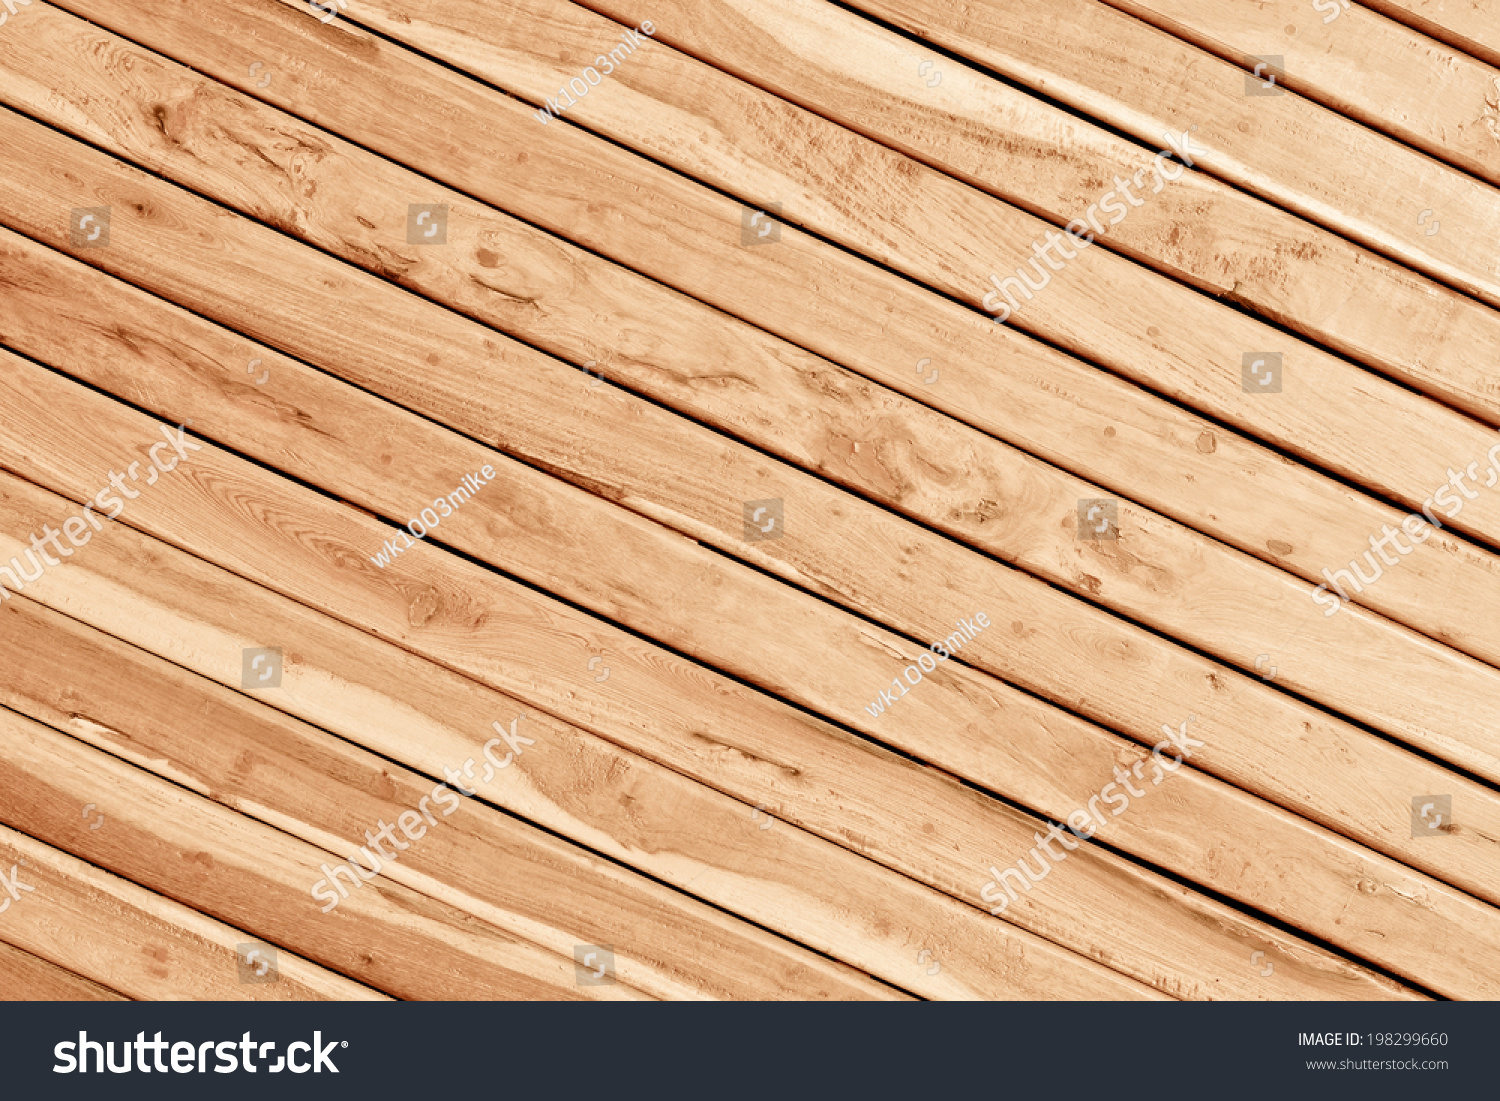 Teak Wandplank Teak Plank Wall Teak Wood Texture Stock Photo 198299660 Shutterstock